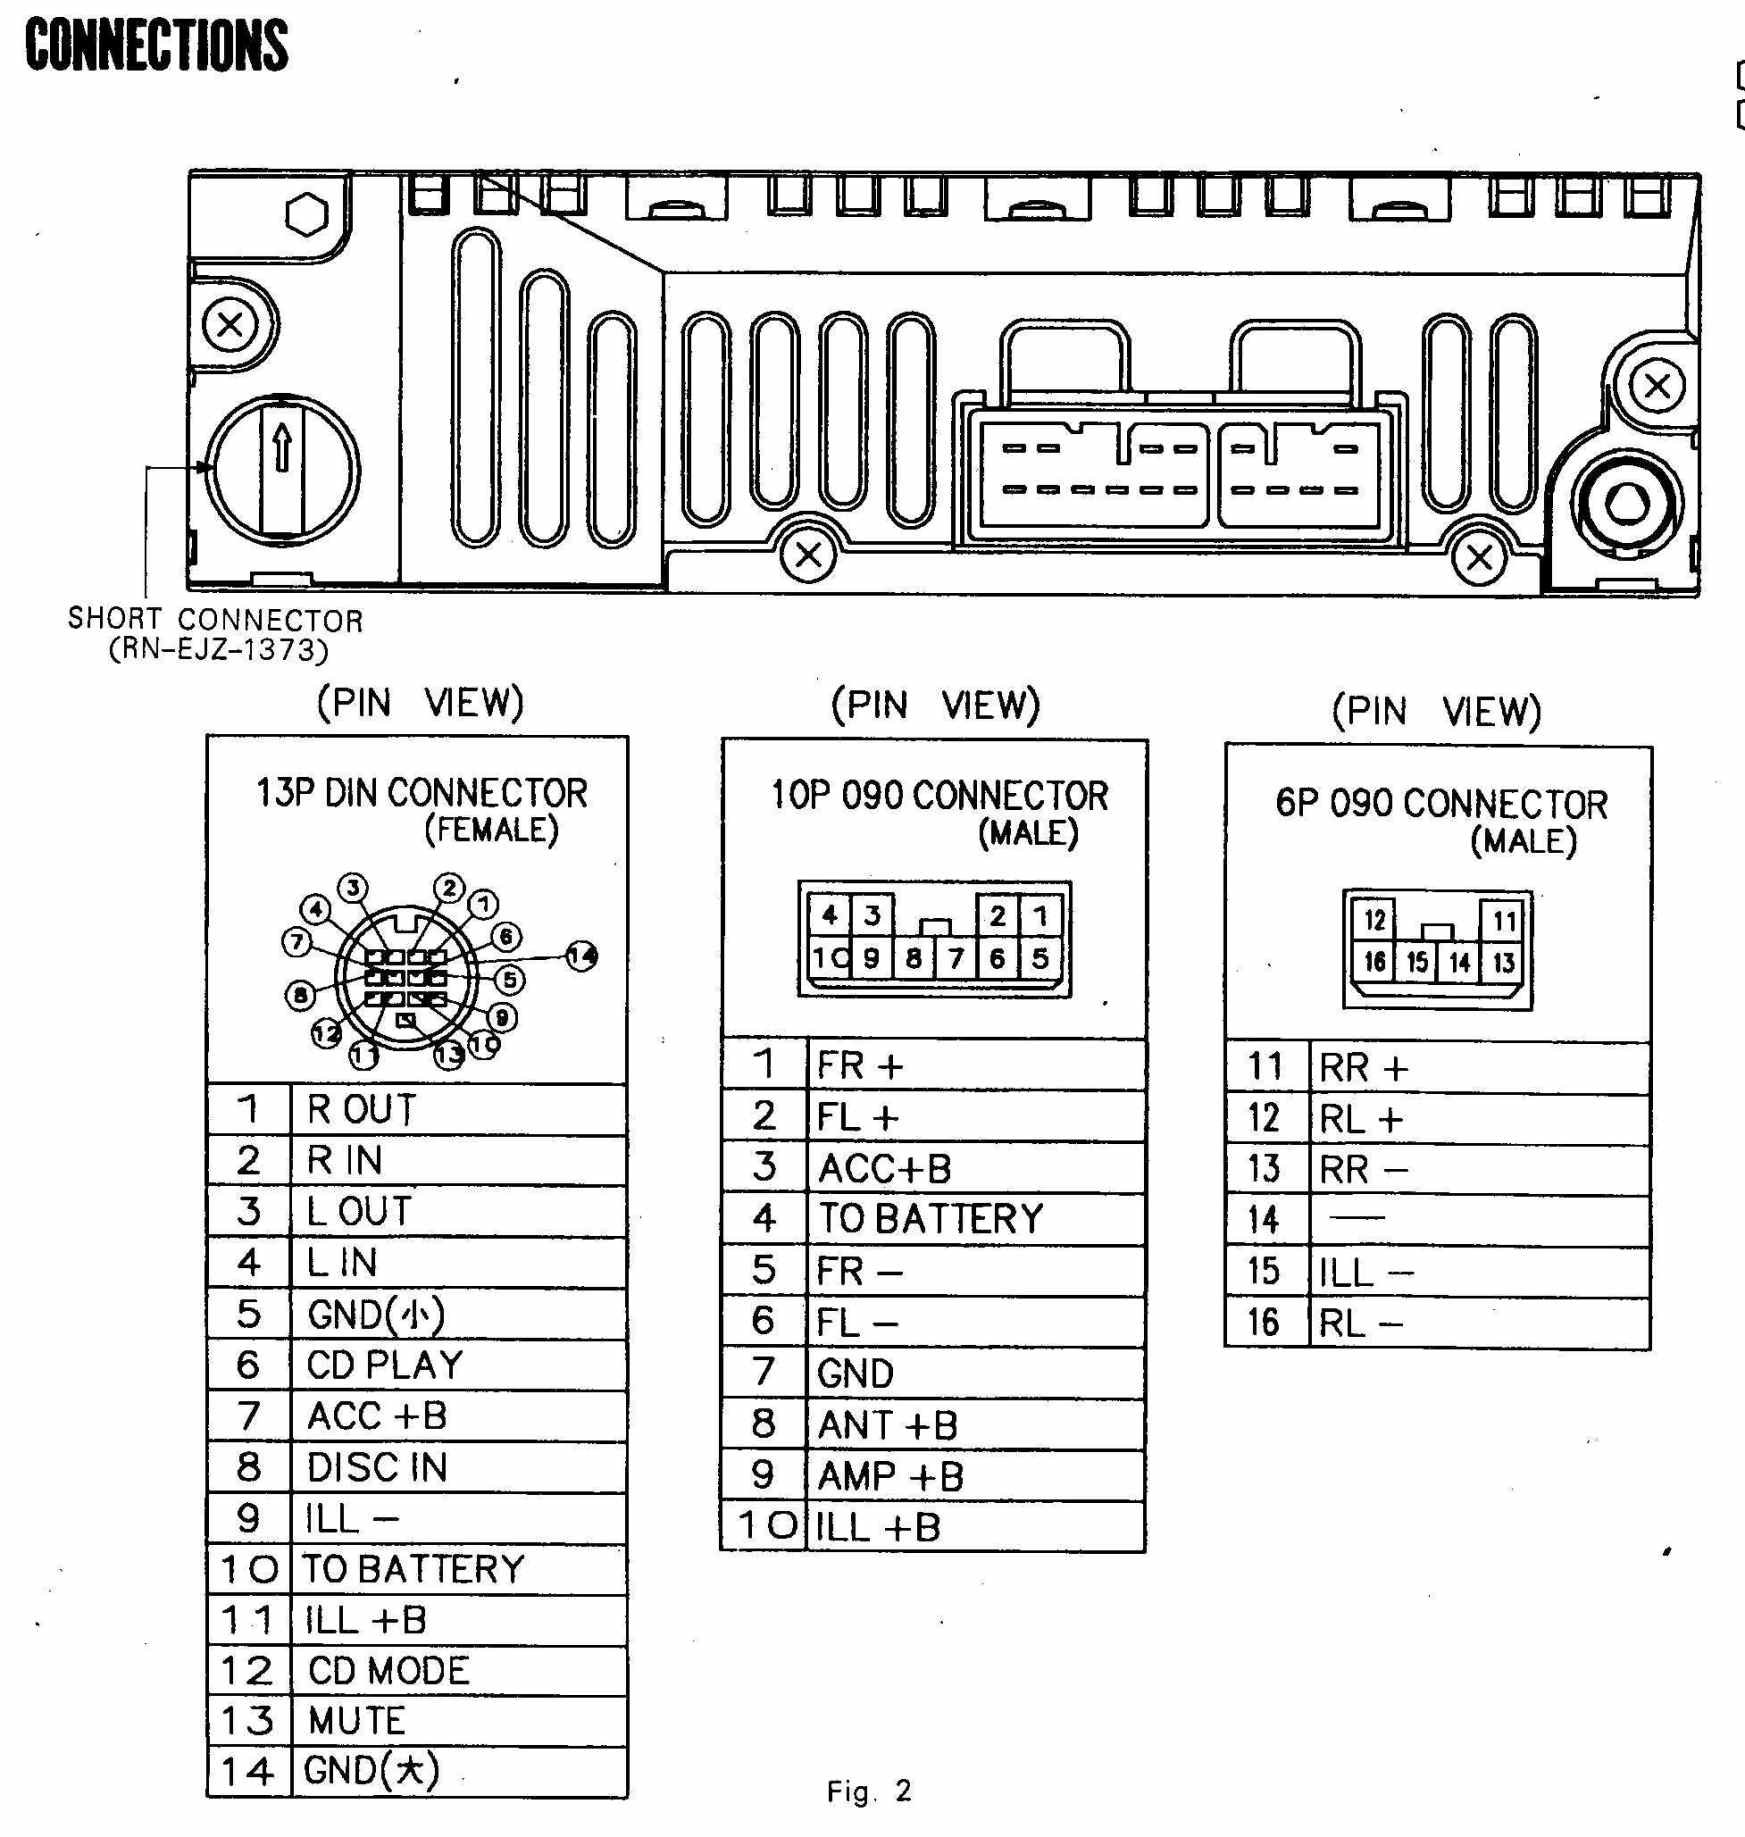 DIAGRAM] Kenwood Kdc X591 Wiring Diagram FULL Version HD Quality Wiring  Diagram - DIAGRAMMERS.GSXBOOKING.ITdiagrammers.gsxbooking.it